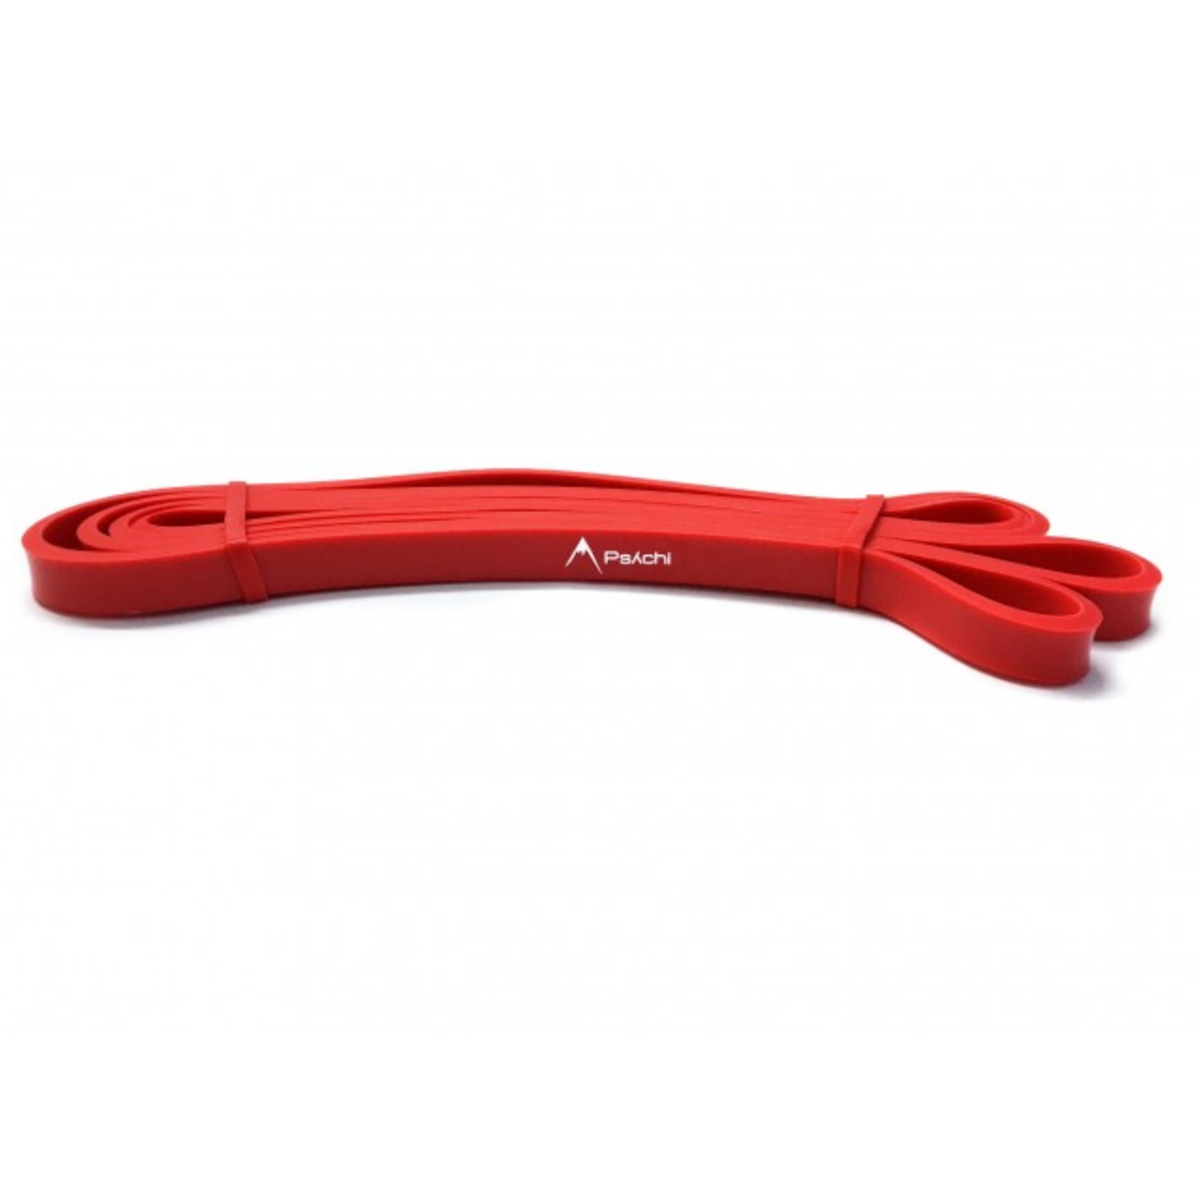 Kinzi Exercise Bands: Psychi Resistance Band - Red (Light)